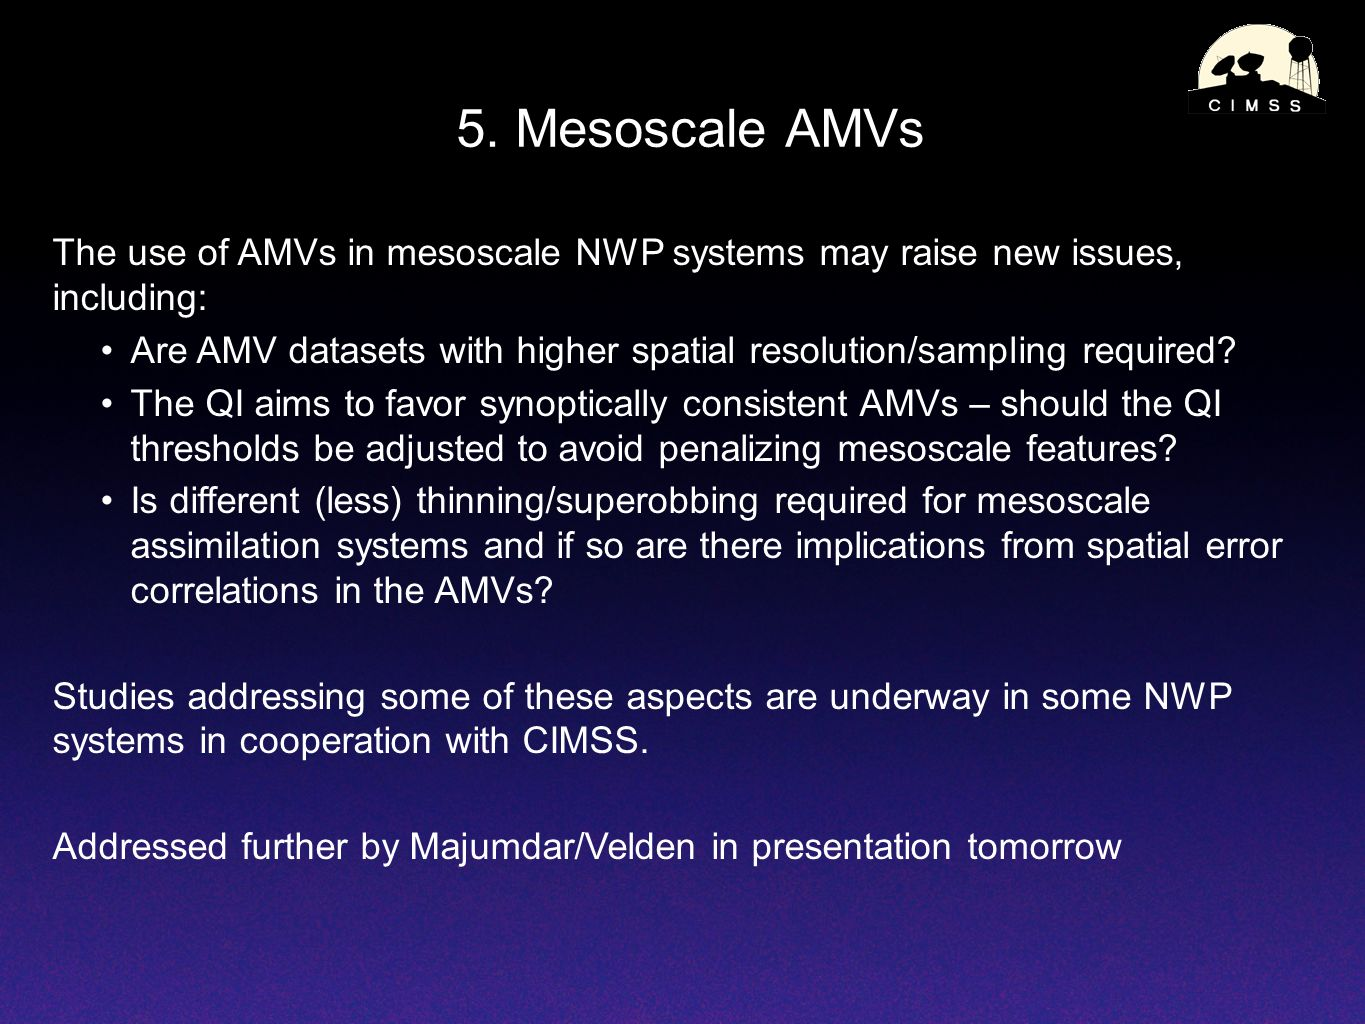 5. Mesoscale AMVs The use of AMVs in mesoscale NWP systems may raise new issues, including: Are AMV datasets with higher spatial resolution/sampling r